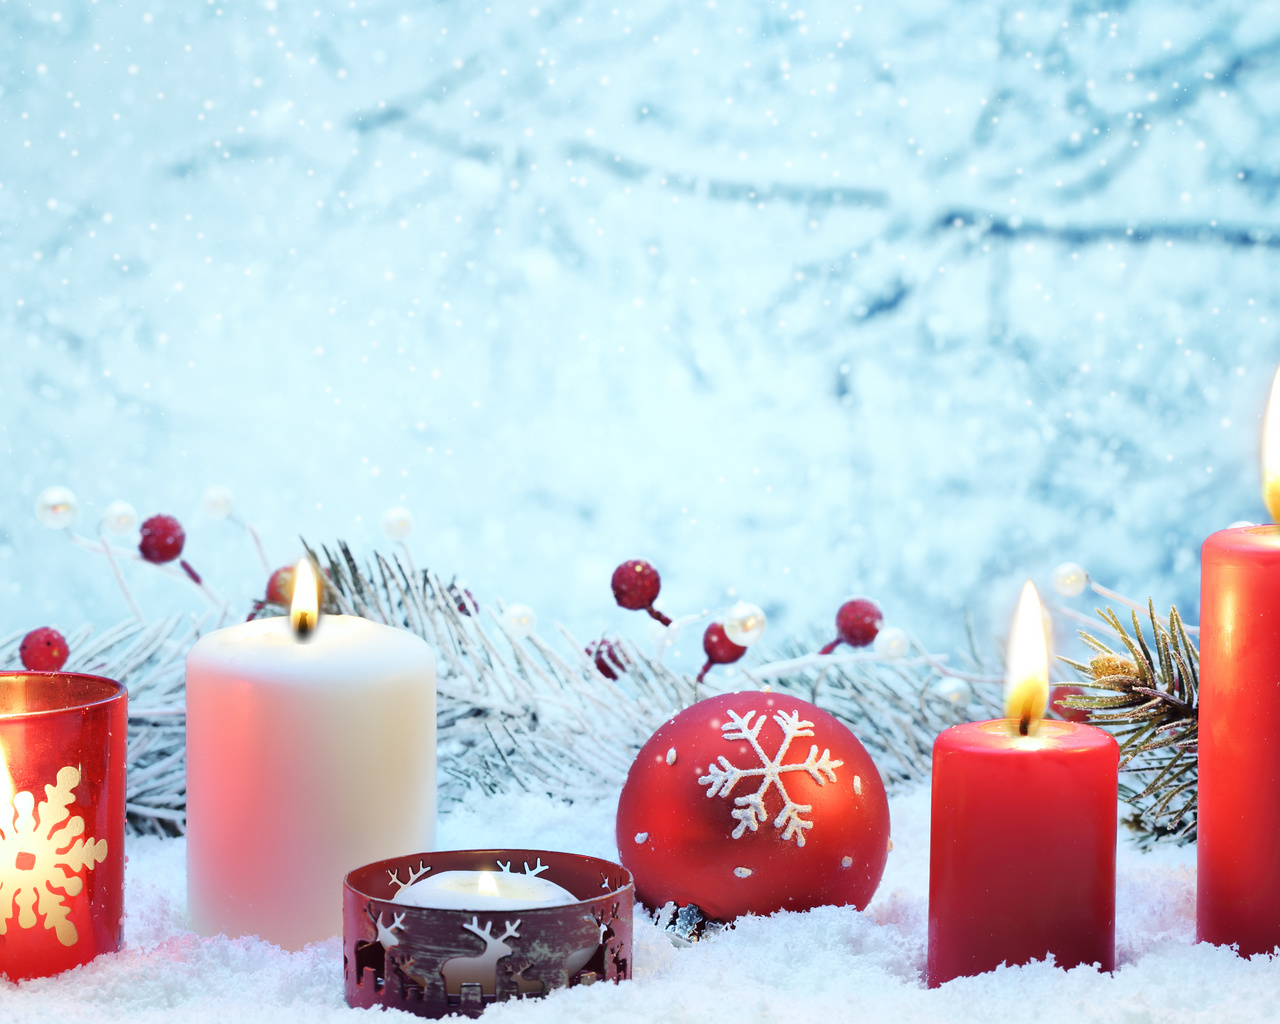 ornaments, , cherry, , decoration, balls, red, Merry christmas, new year, lights, candles, bokeh